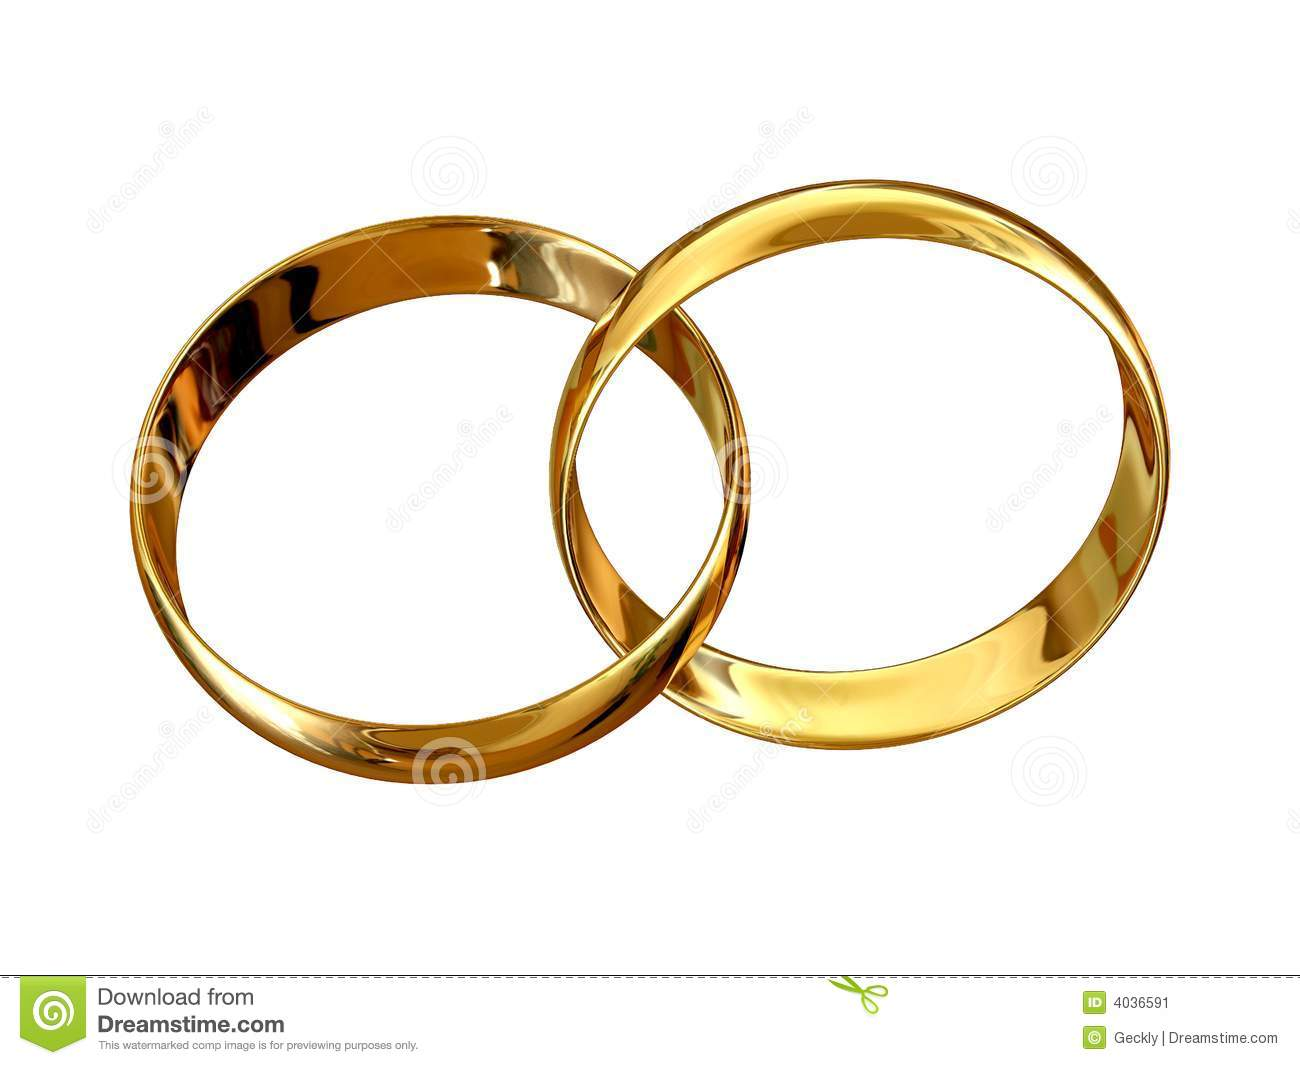 ring wedding to a safer accidents active clasps prevent symbol rings